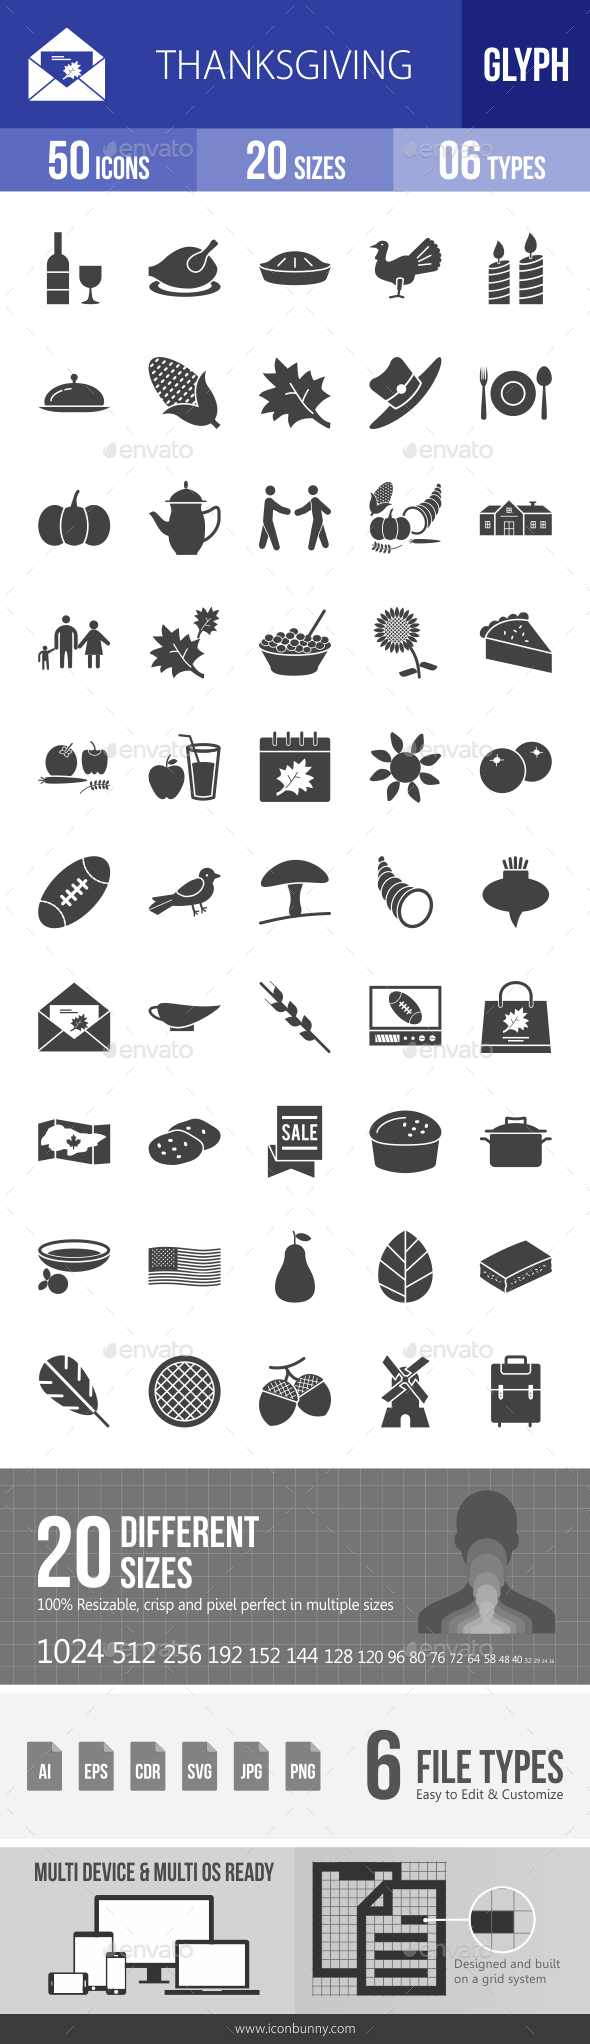 Thanksgiving Glyph Icons - Icons